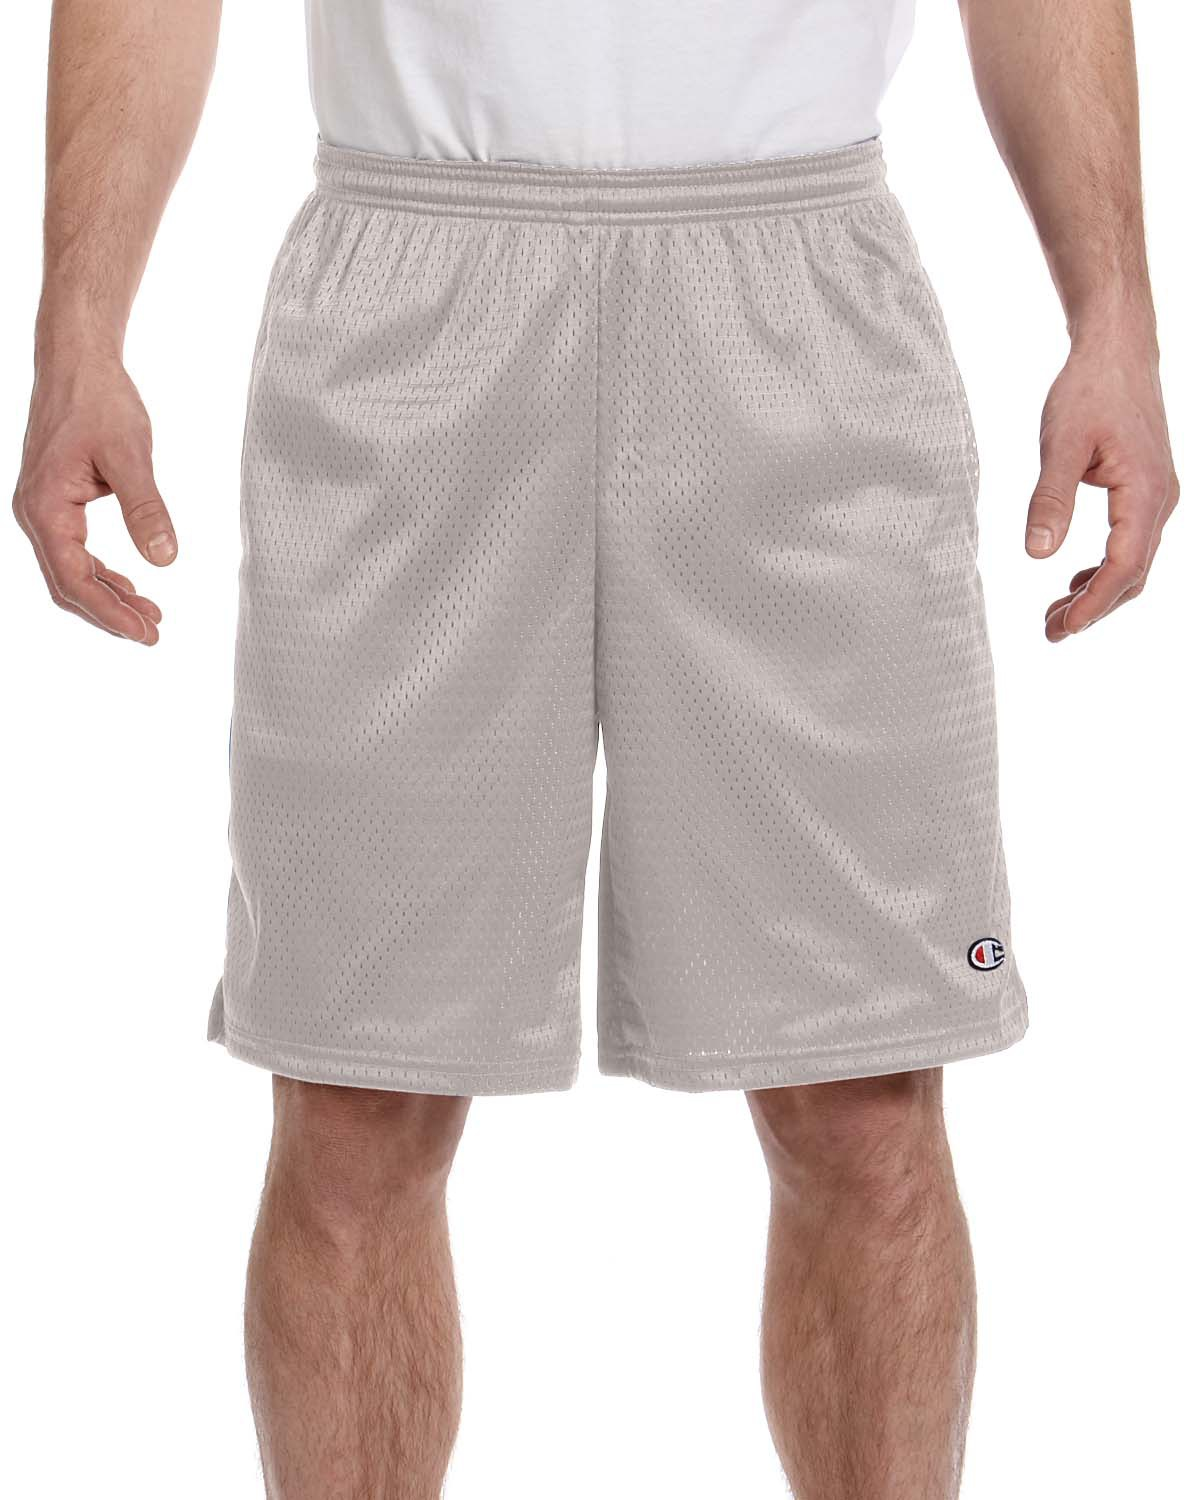 Champion 81622 Adult 3.7 oz. Mesh Short with Pockets